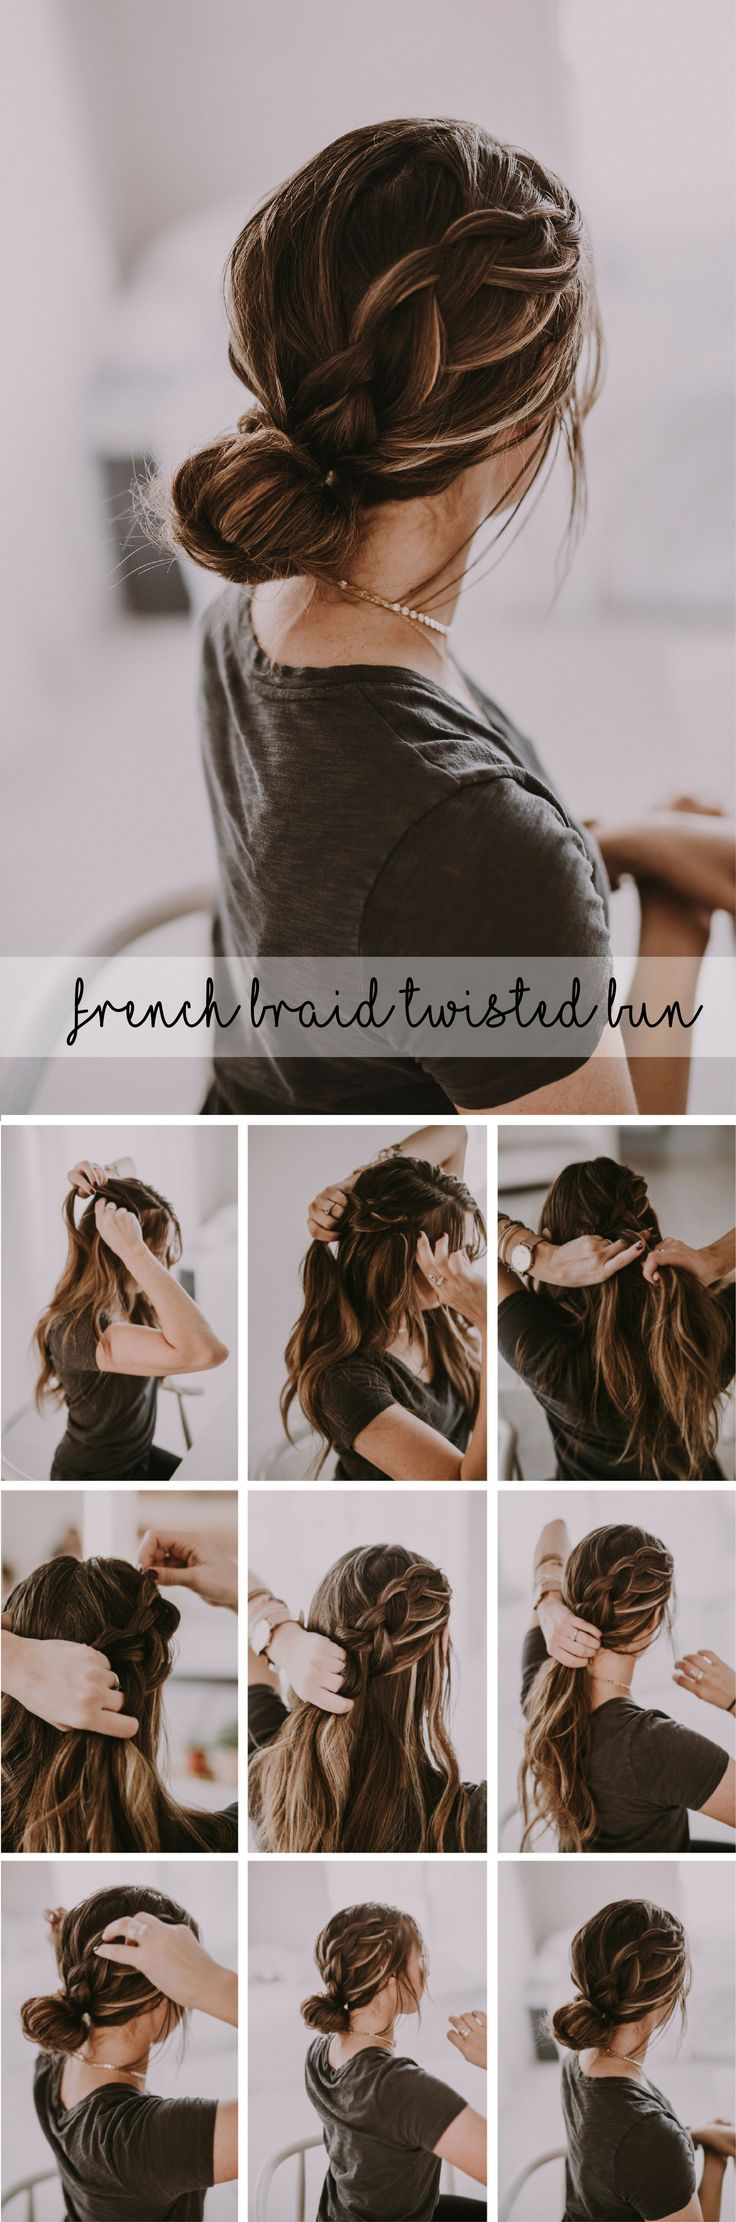 this beautiful hairstyle is perfect for holiday parties, events, or with your favorite hoodie and sneakers!  french braid twisted bun up do hairstyle tutorial - simple to follow instructions and video tutorial #BeautifulHairstyles